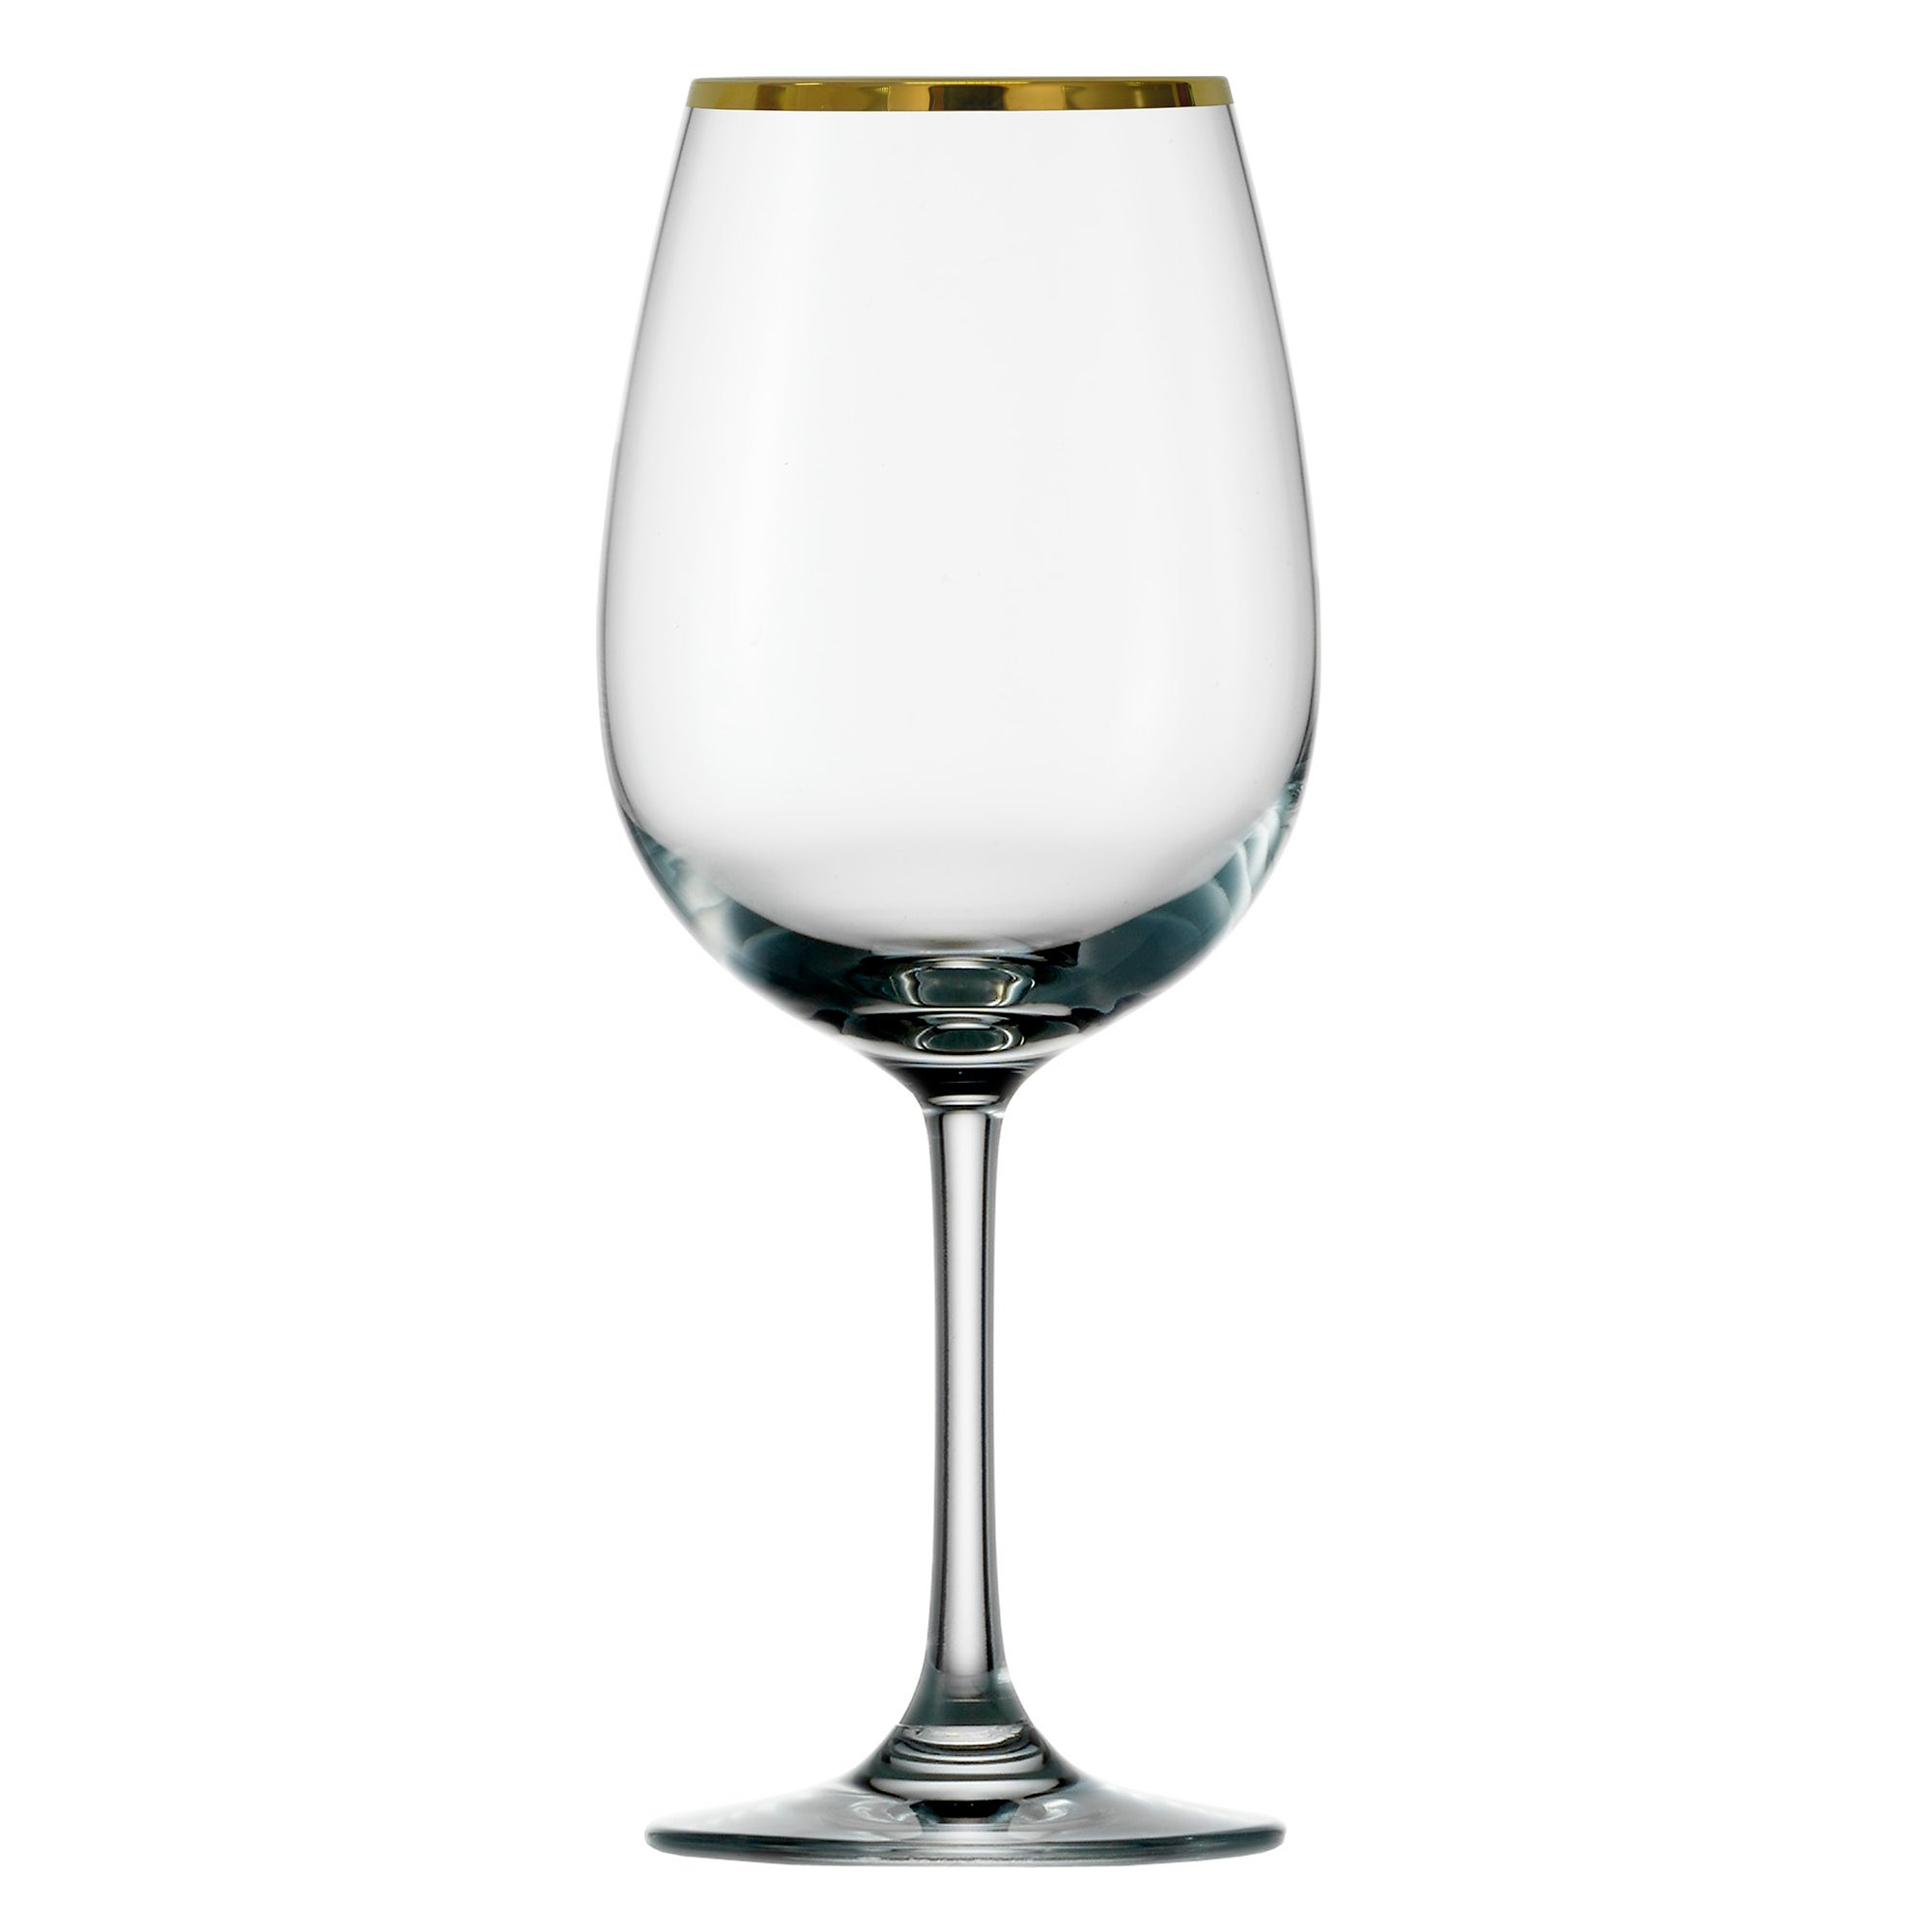 Standard Gold Rimmed Set of 4 Wine Glasses